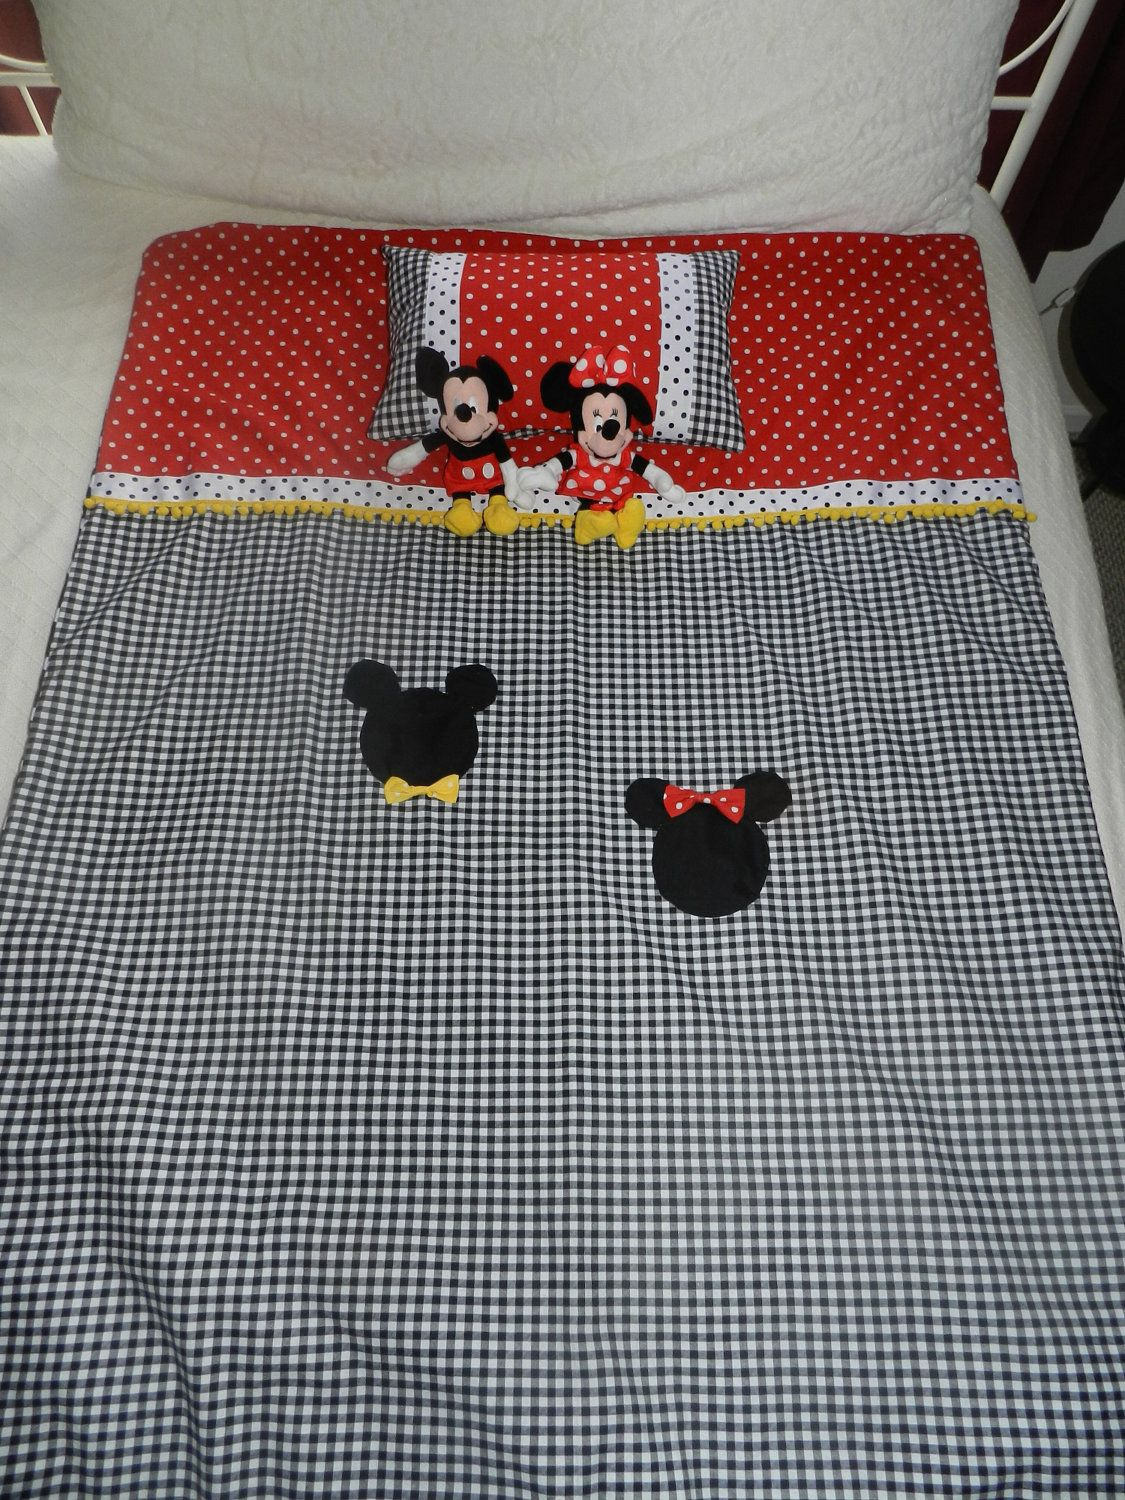 Crib pillows babies - Mickey And Minnie Mouse Baby Crib Toddler Bedding Quilt With Coordinating Pillow 85 00